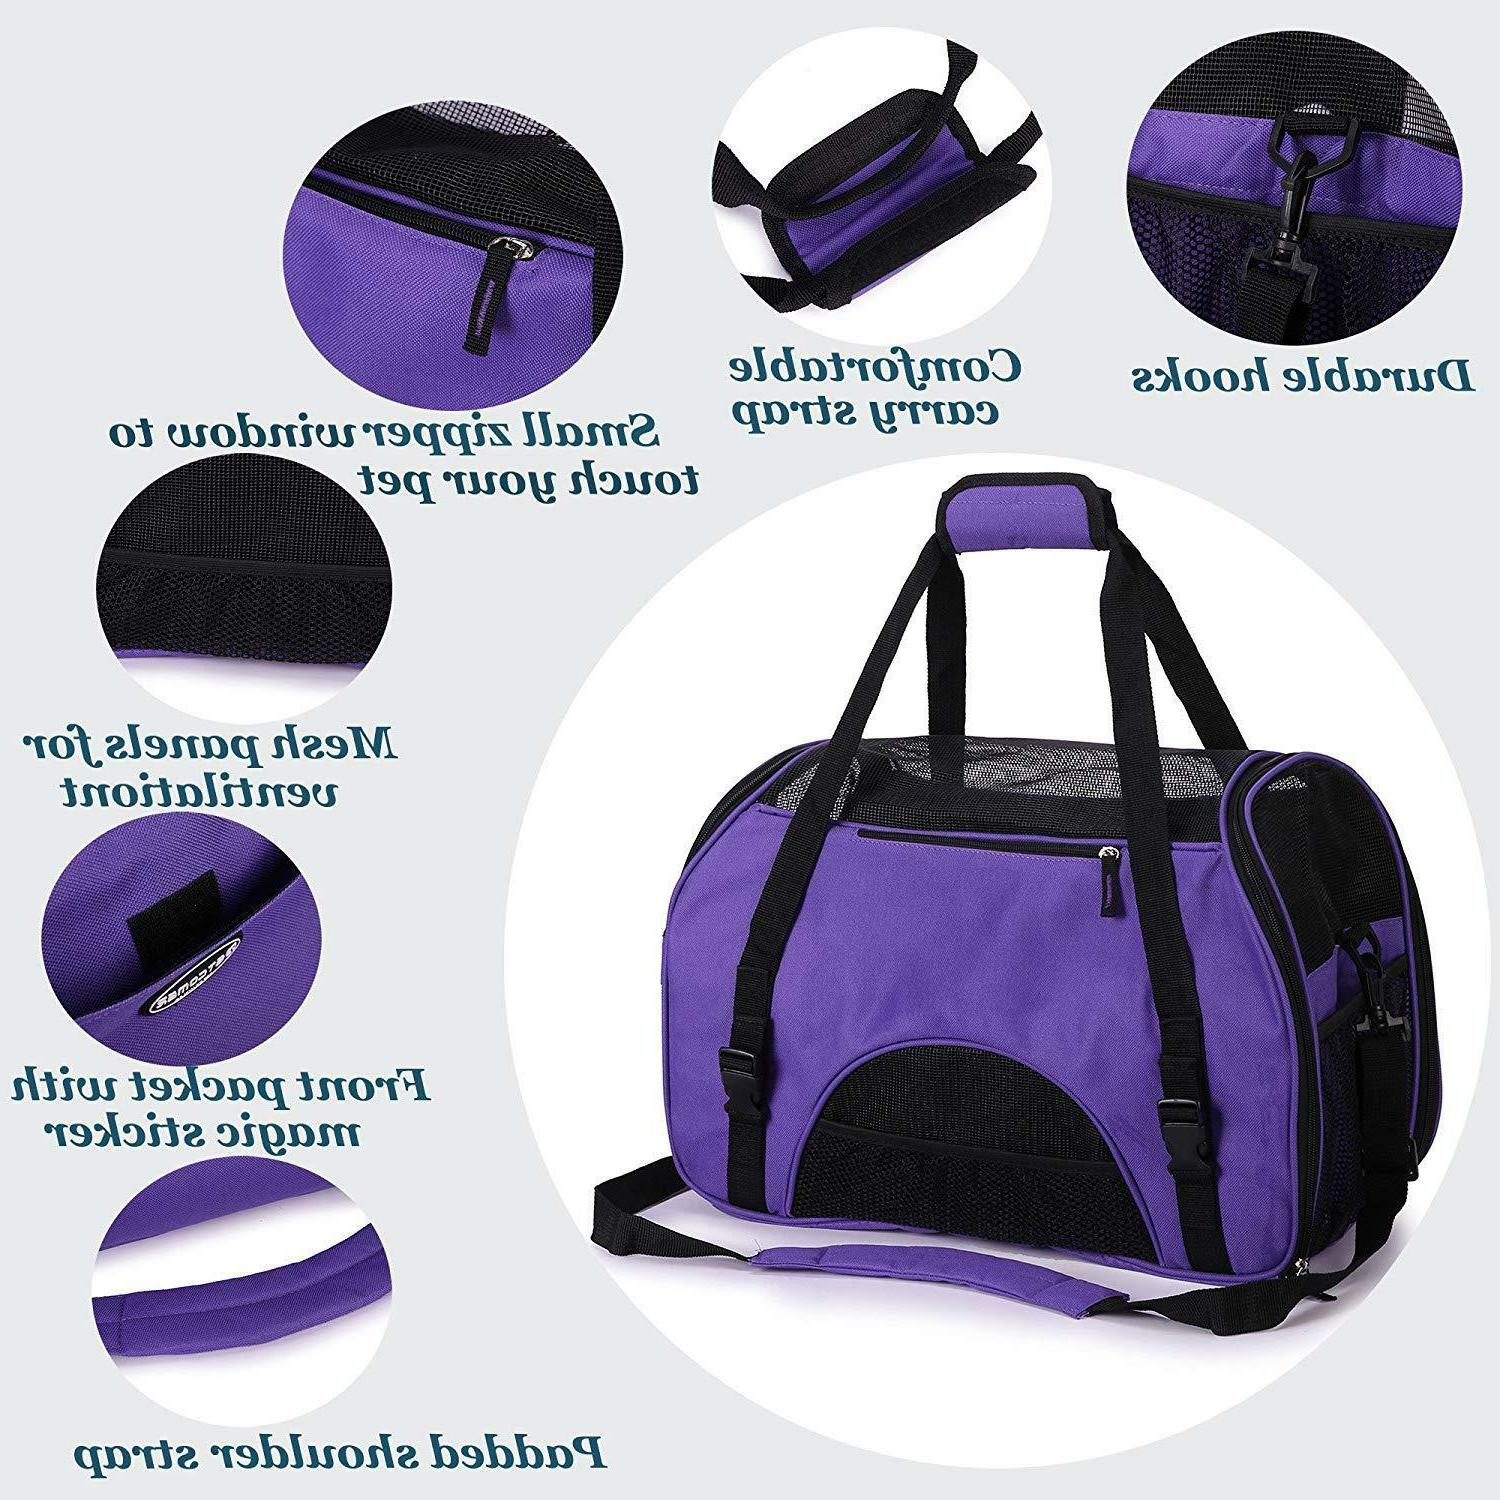 Jespet Dog Carrier for Cats,